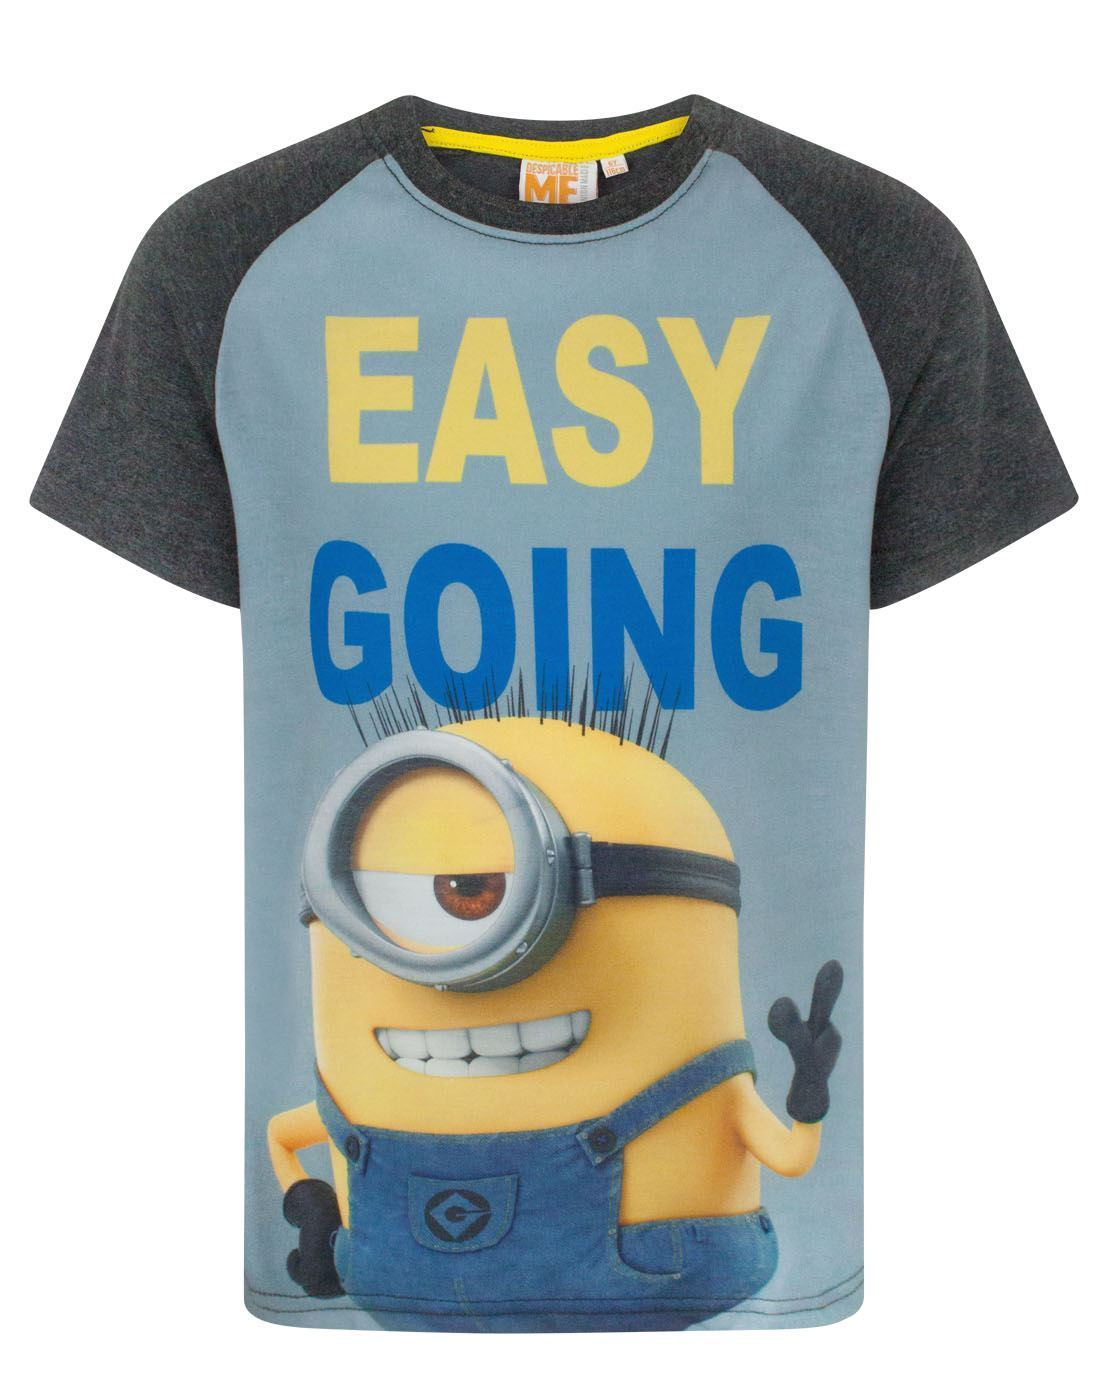 5d4f9cacda Despicable Me Easy Going Minion Boy s T-Shirt – Vanilla Underground